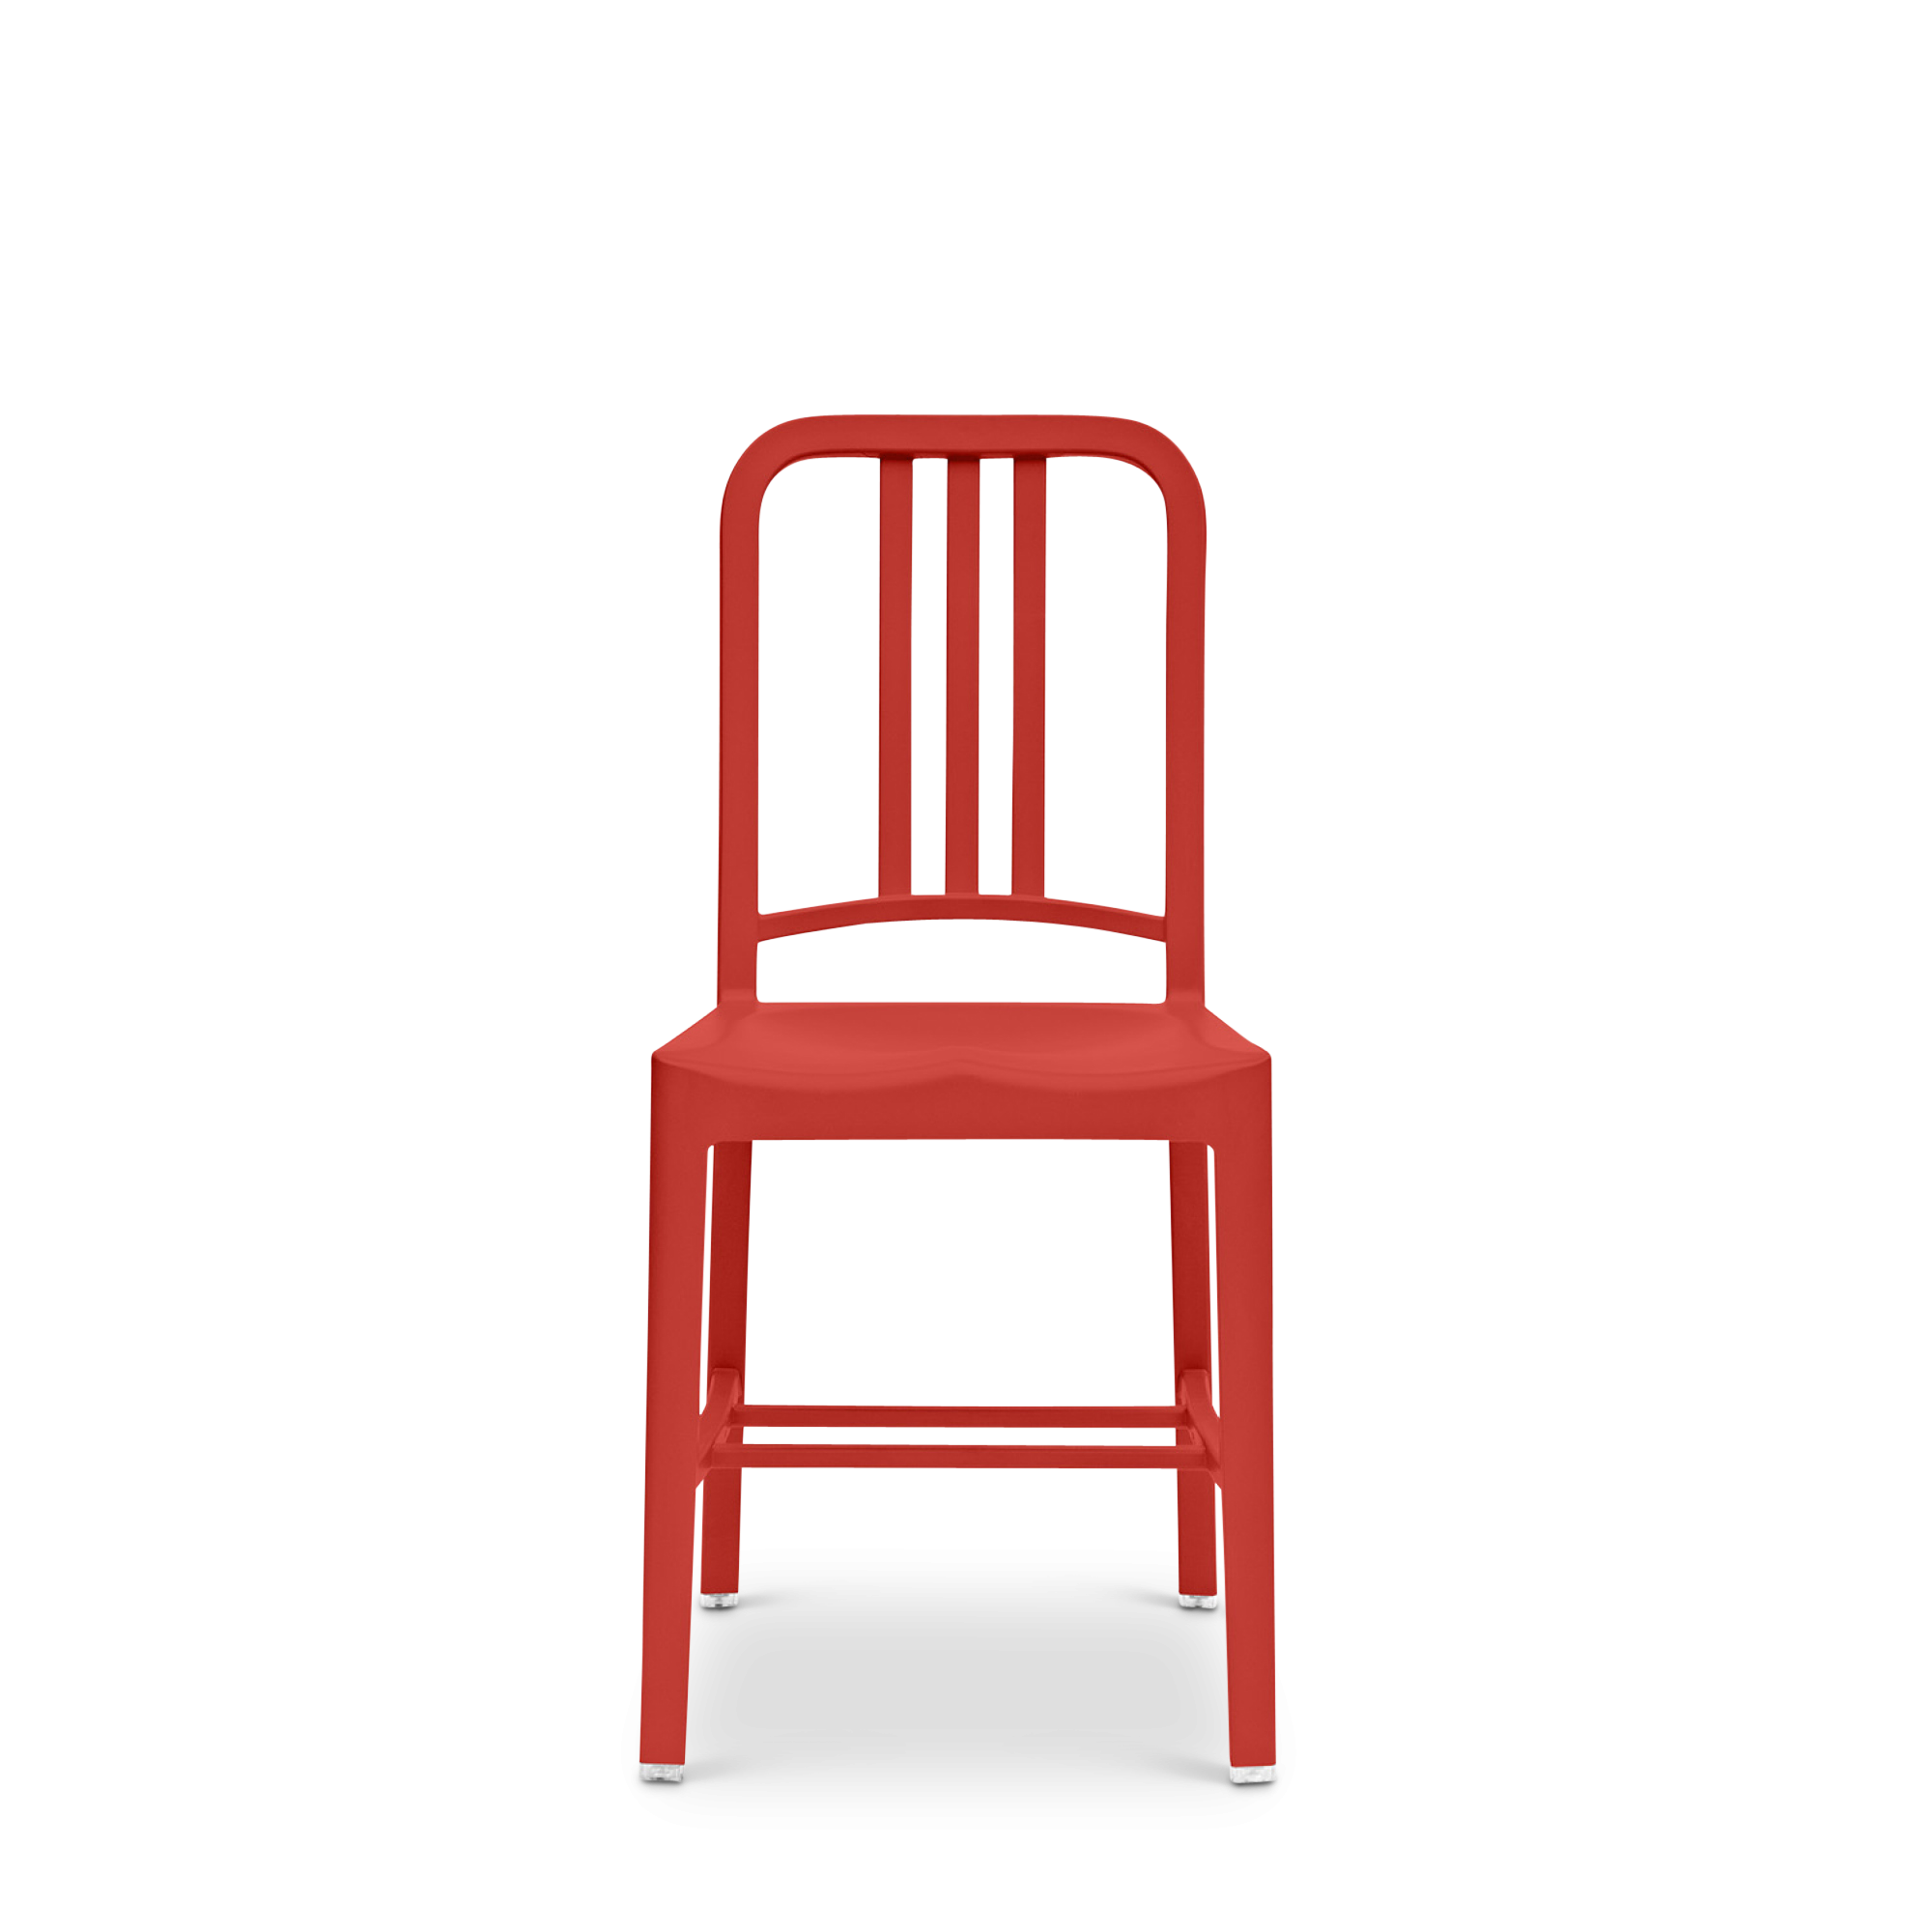 111-navy-chair-red